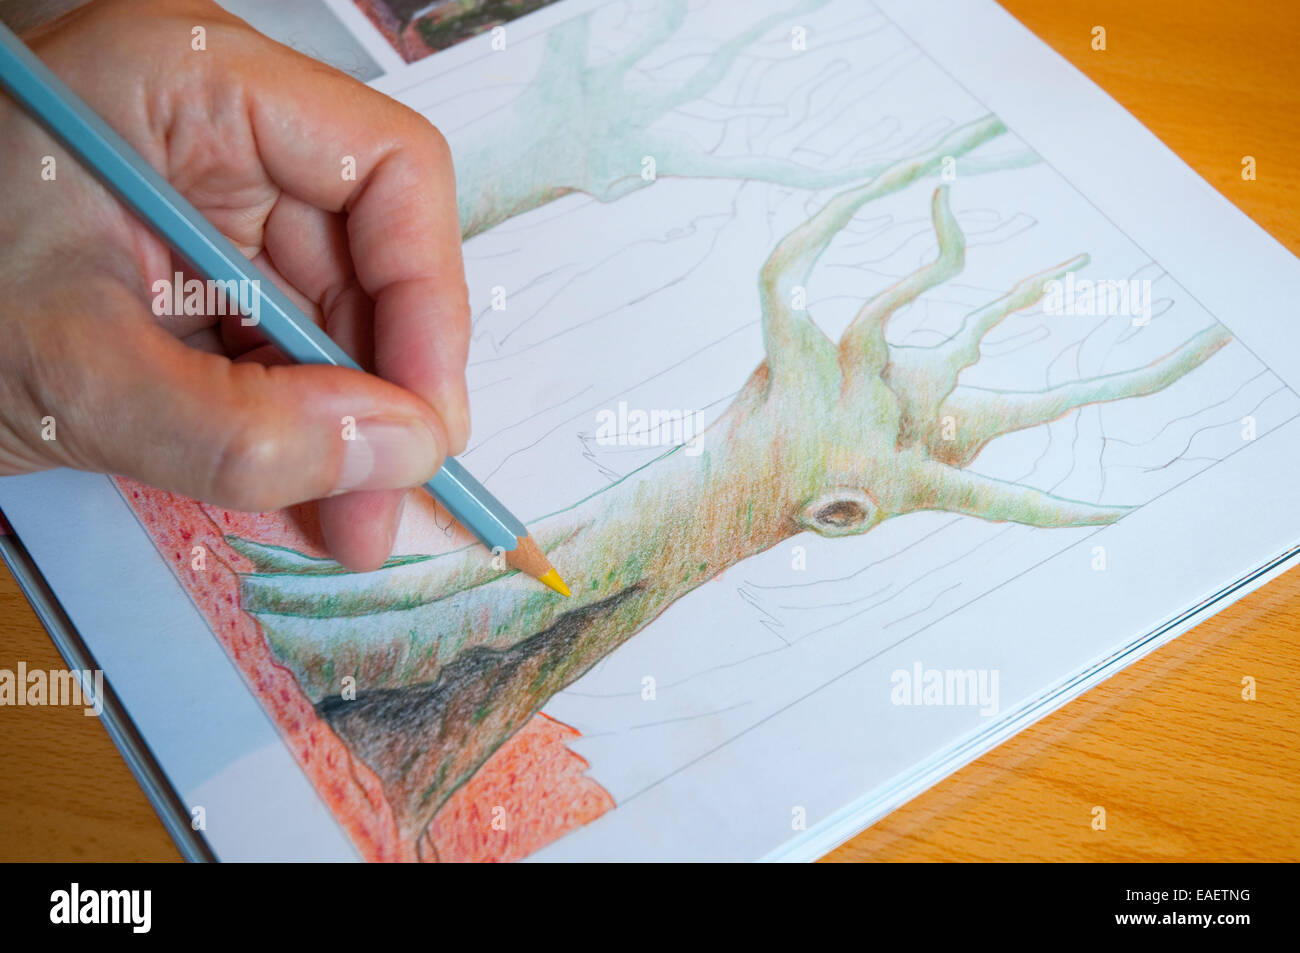 Man's hand drawing with color pencil. Close view. - Stock Image